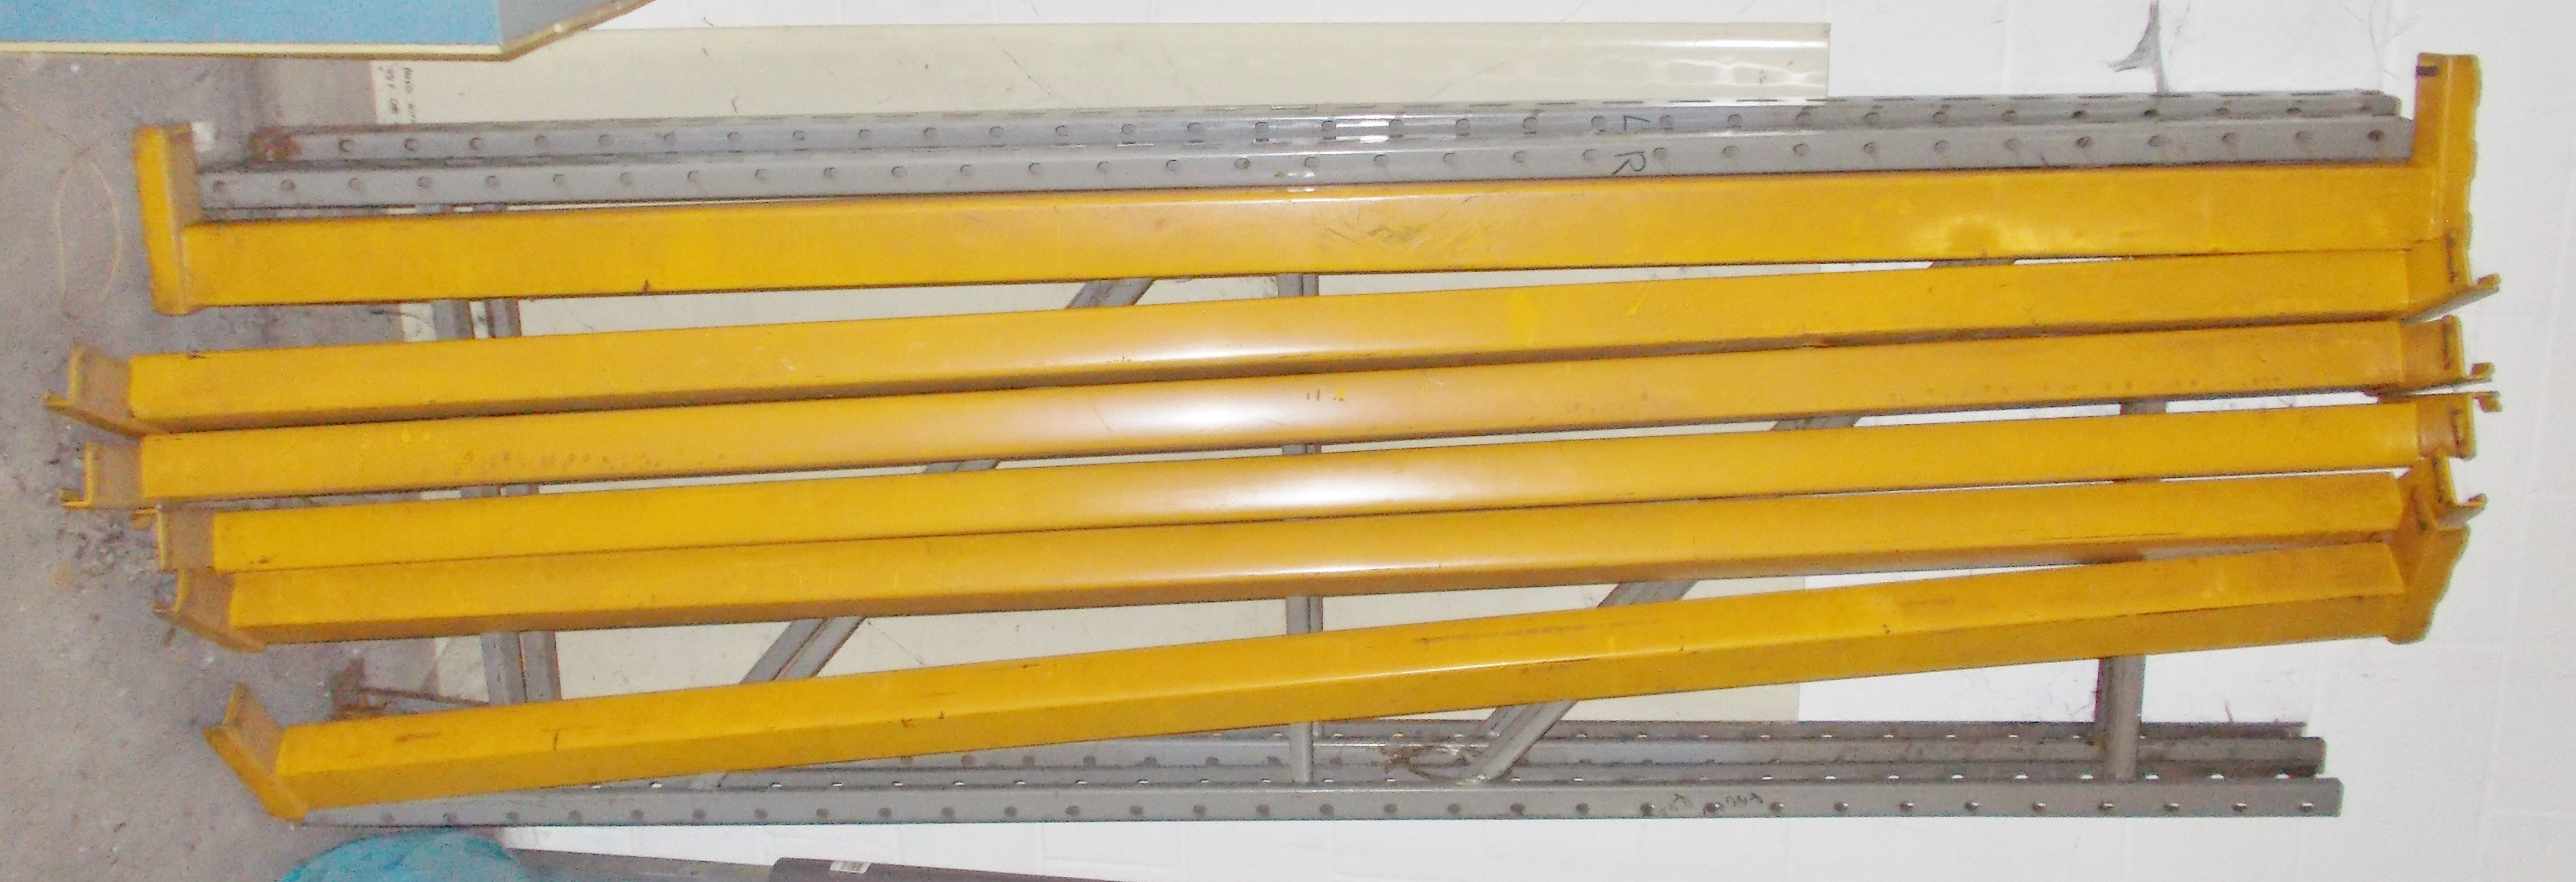 Lot 12 - SECTION PALLET RACKING